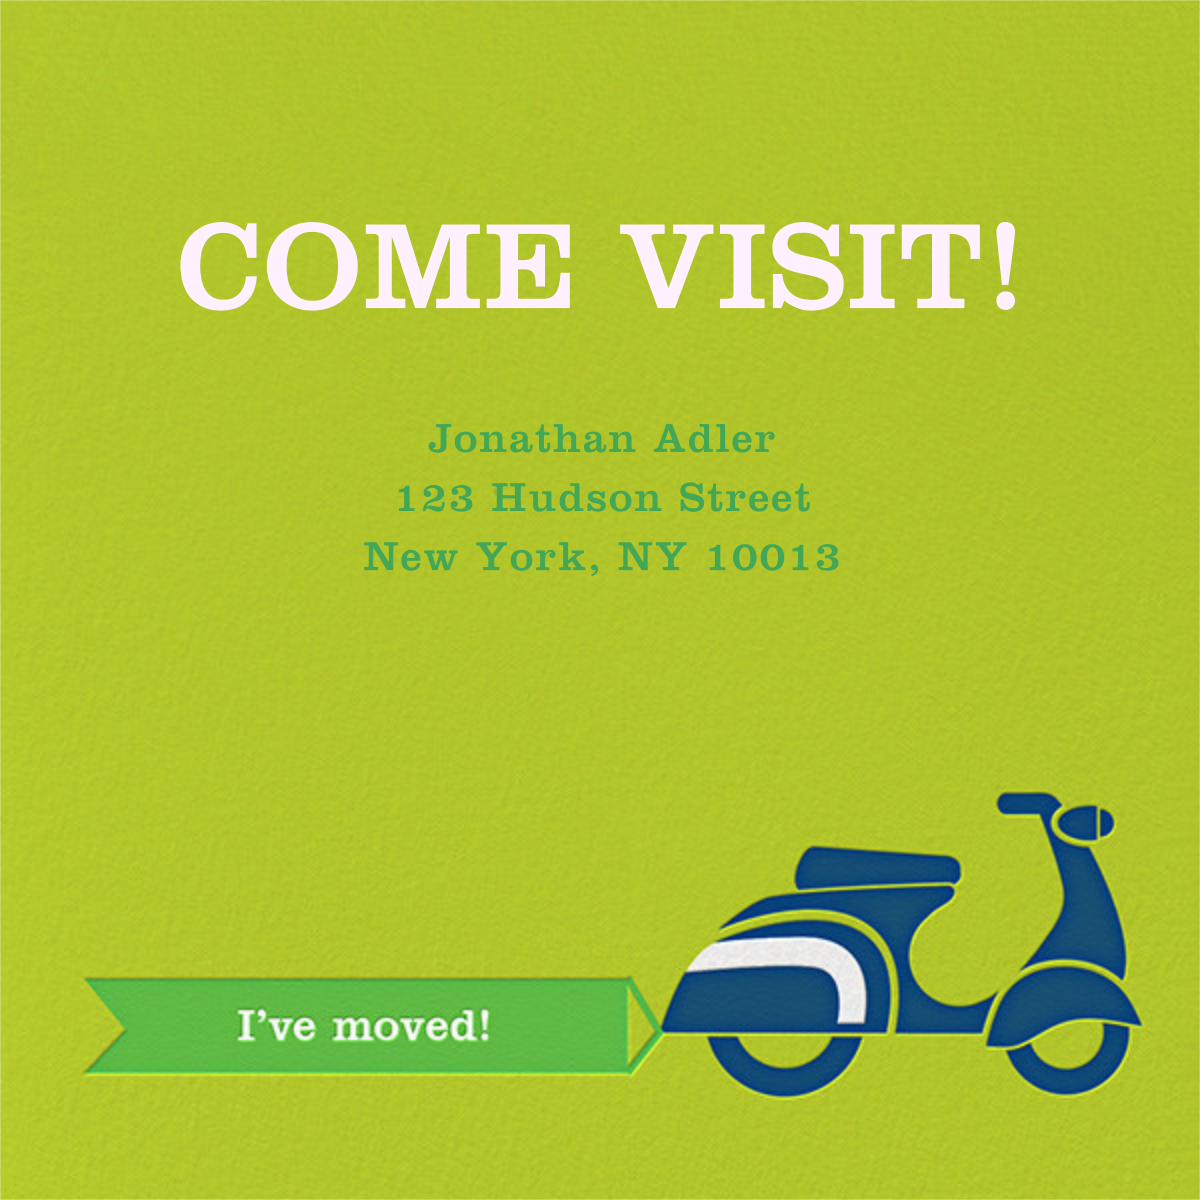 Scoot-a-Toot - Green - Jonathan Adler - Moving